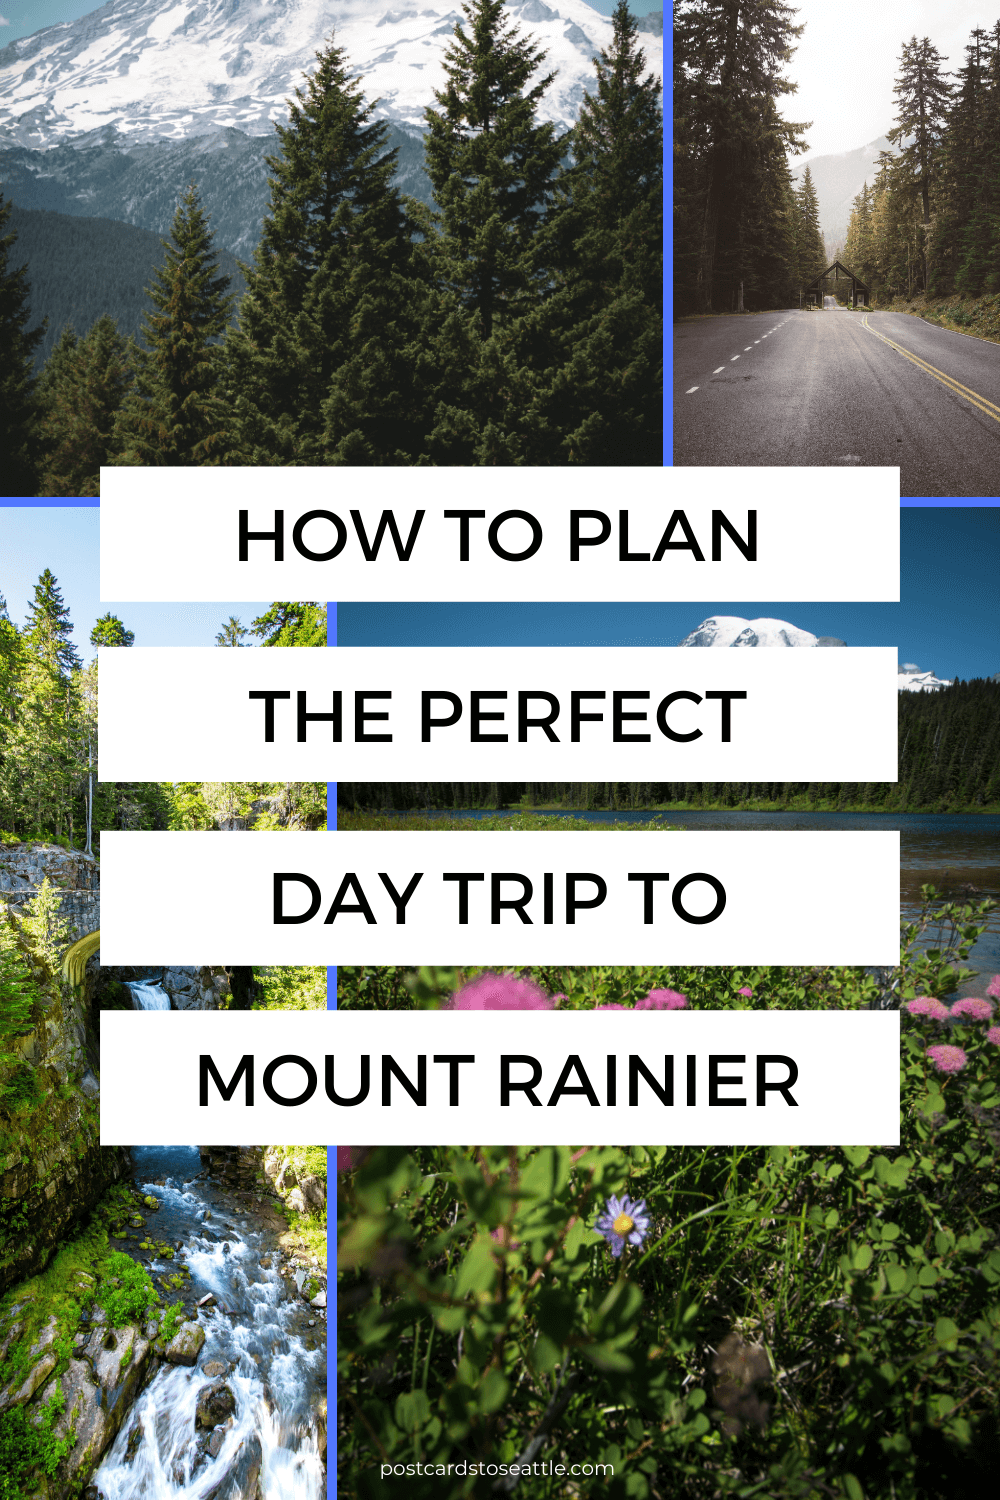 The Best Way to Spend One Day in Olympic National Park